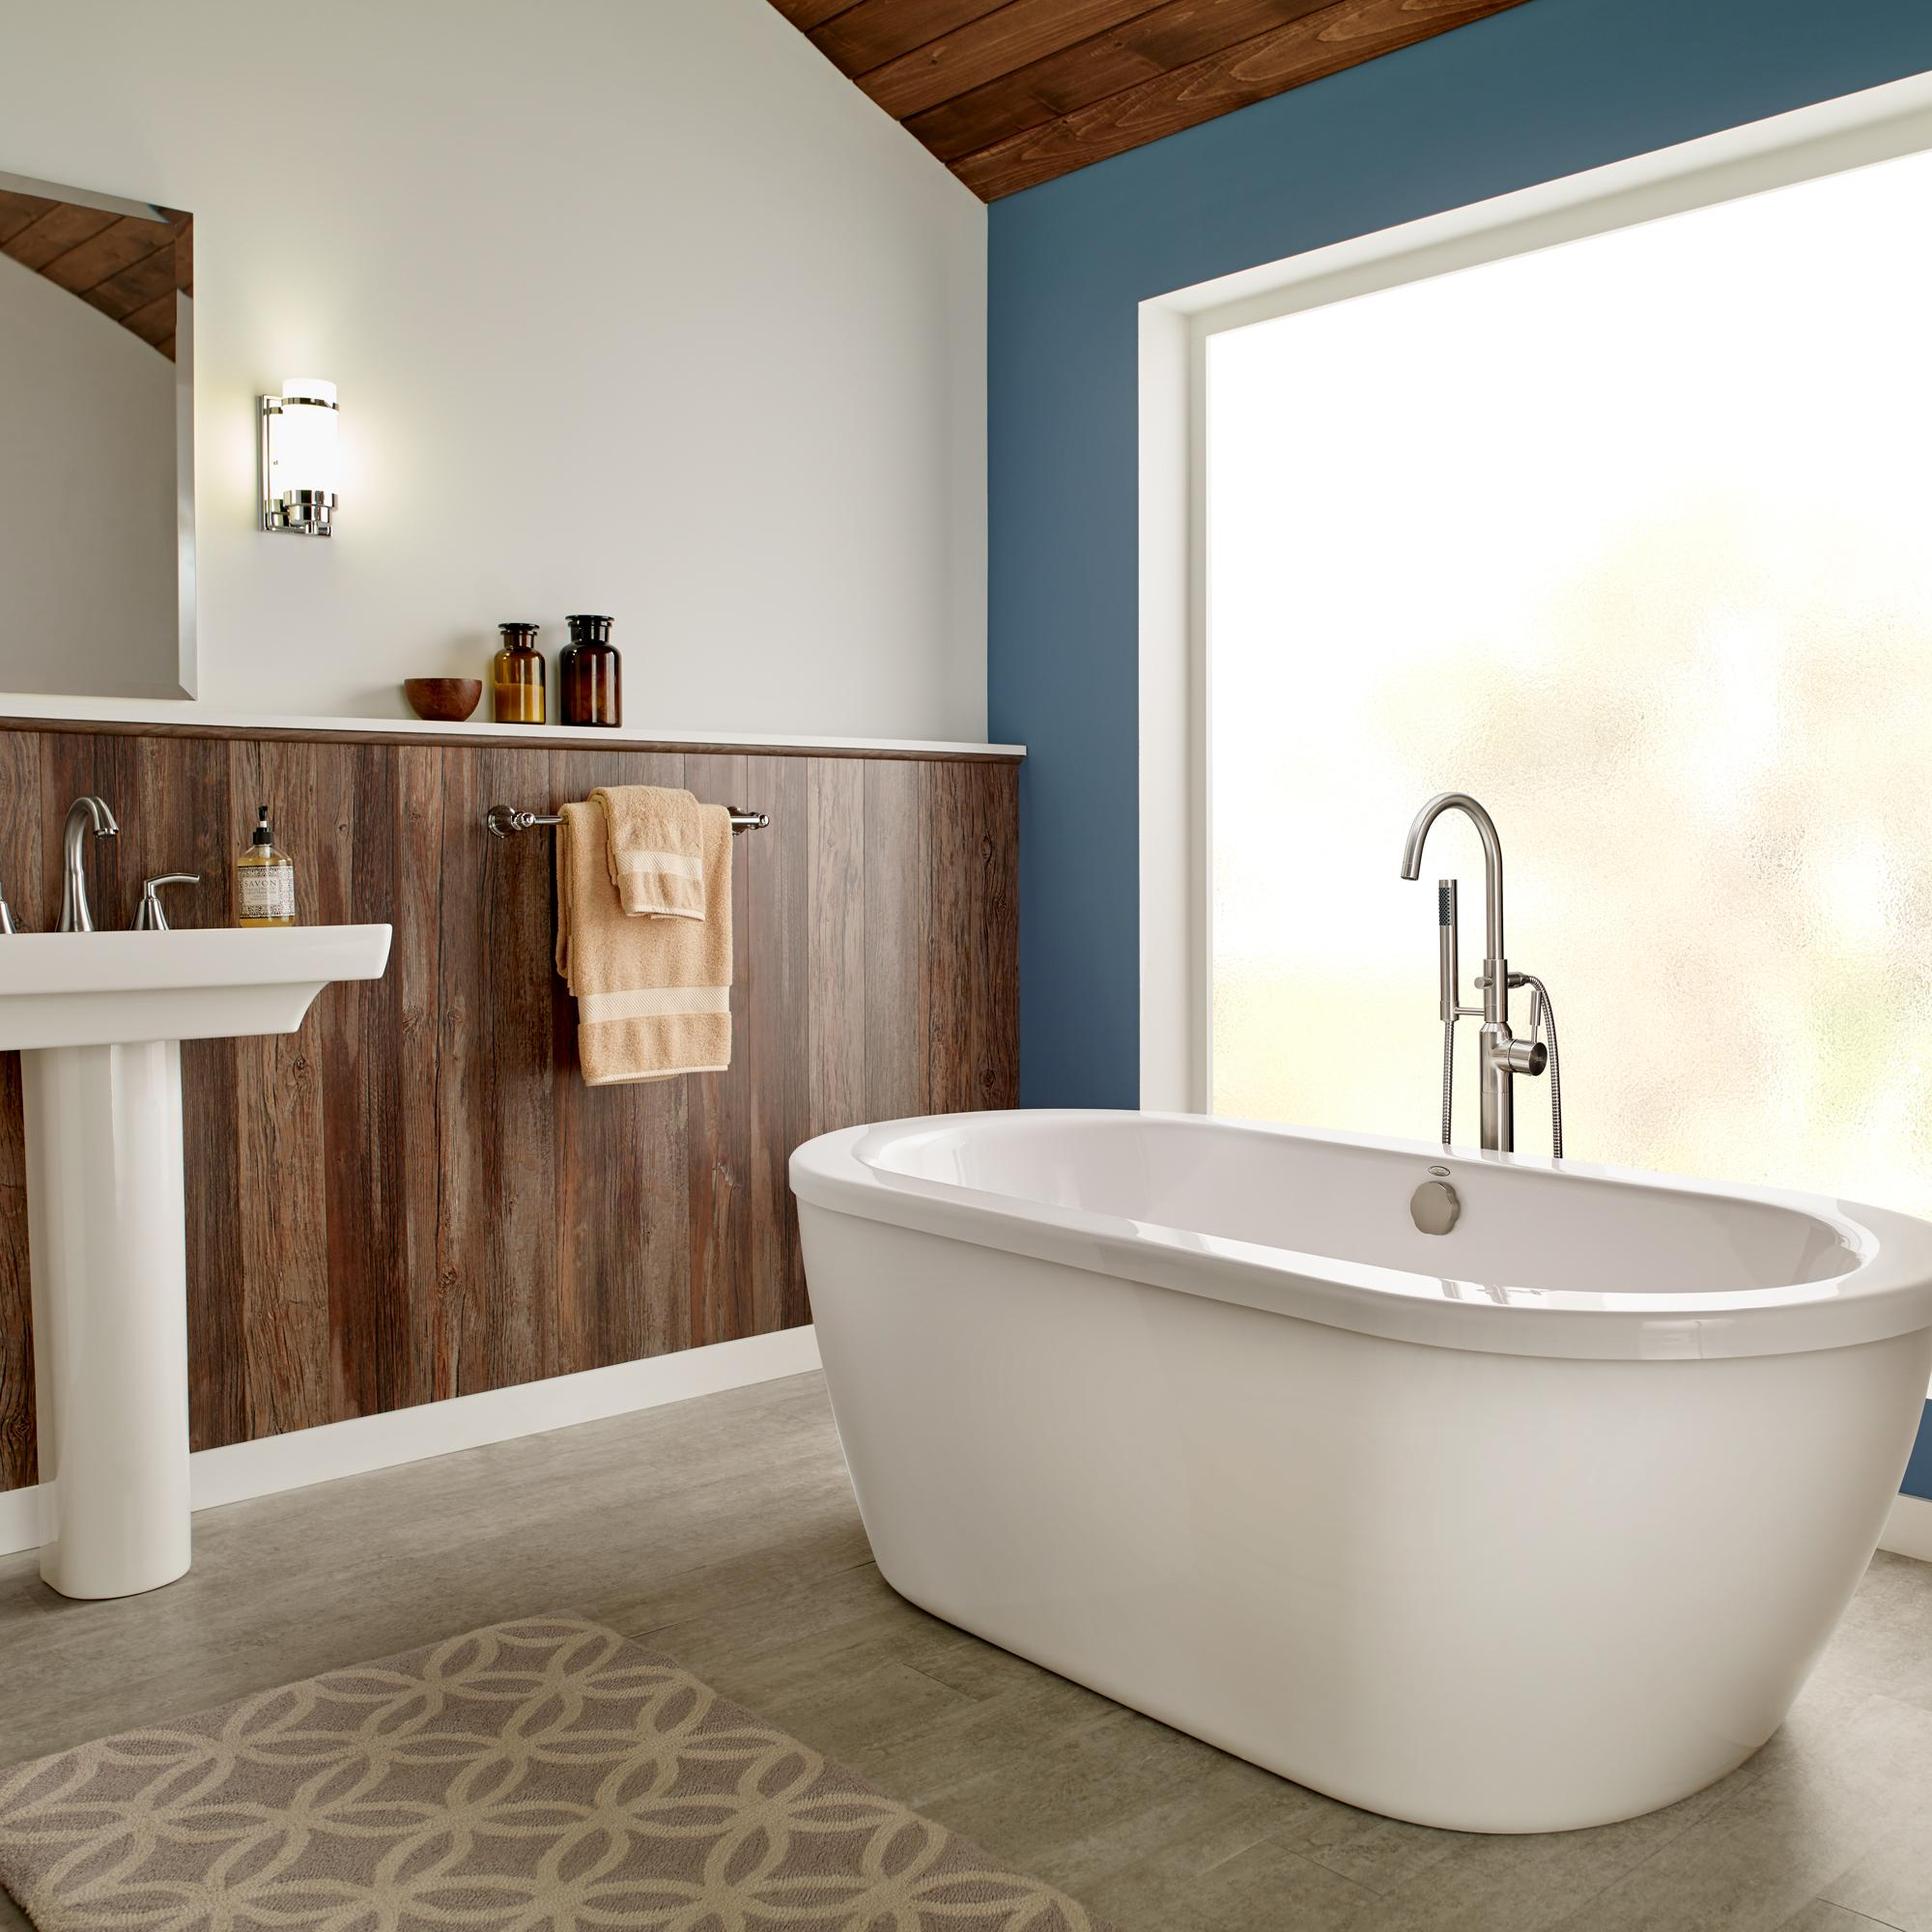 rack window tub viewing make beautiful design deep kohler gallery traditional shower towel blind using tubs soaker a what your bathroom with in is ideas